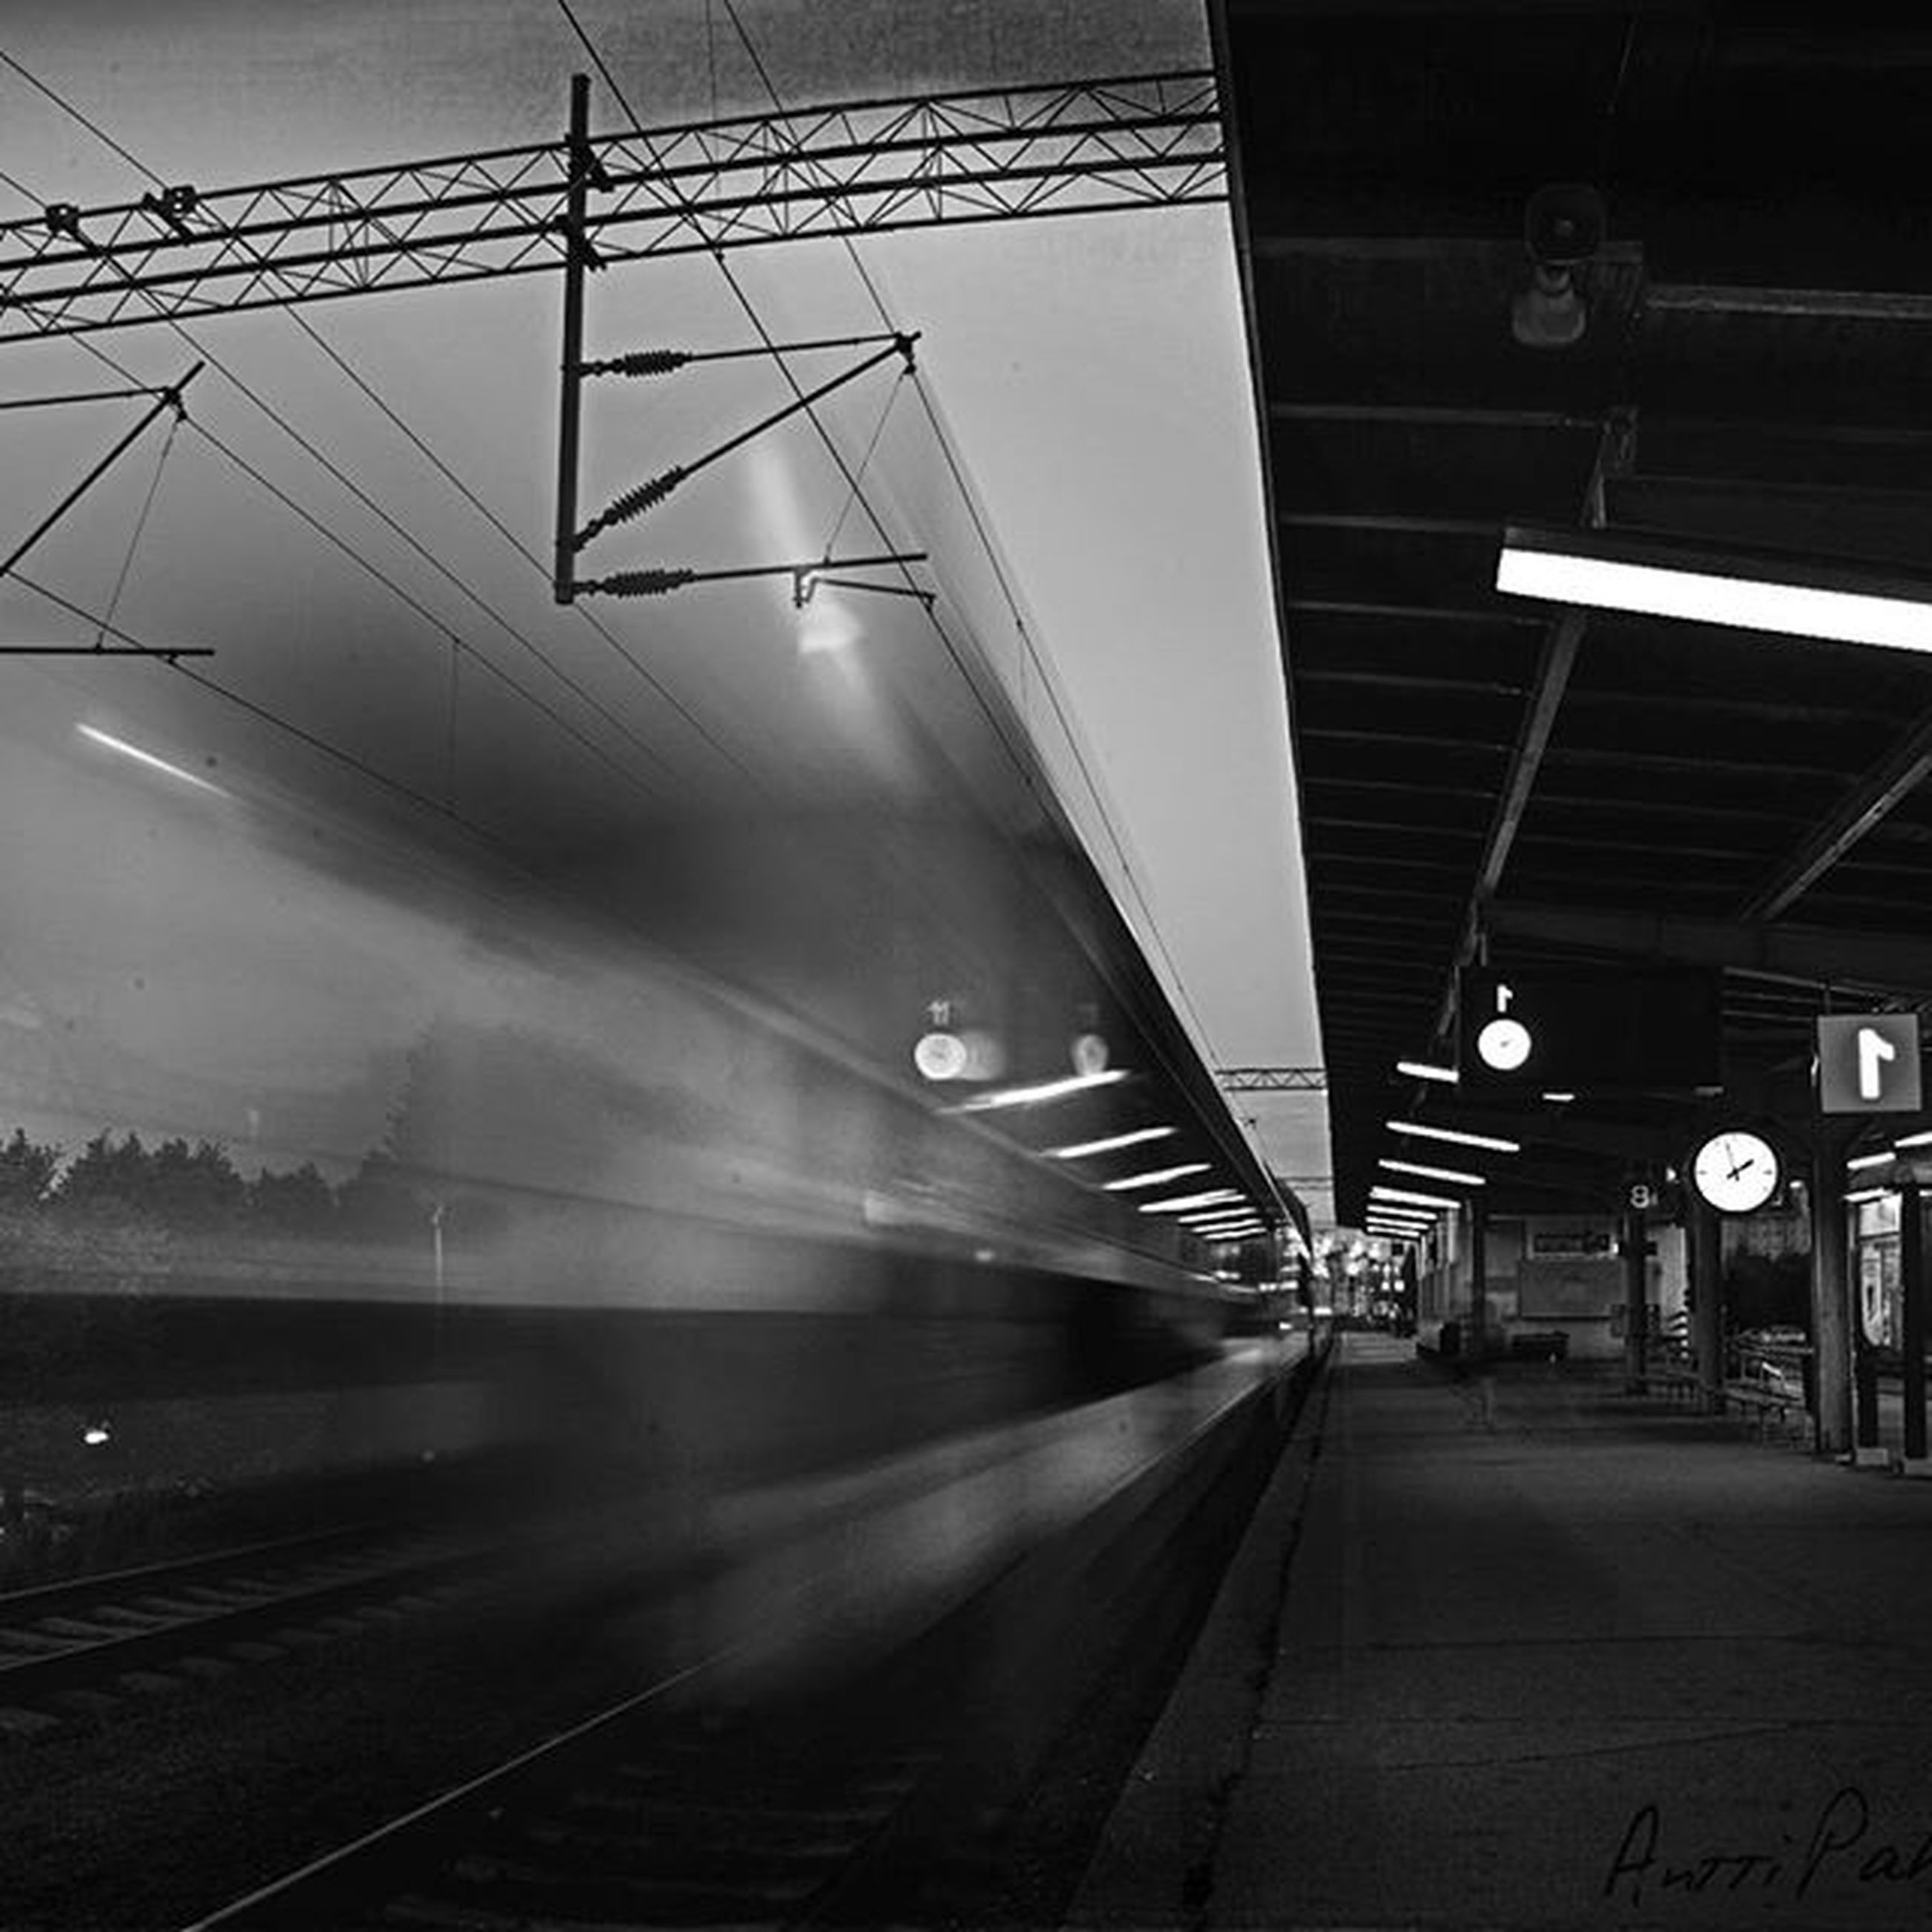 transportation, railroad track, rail transportation, public transportation, railroad station platform, railroad station, the way forward, diminishing perspective, illuminated, mode of transport, built structure, train - vehicle, power line, architecture, travel, vanishing point, electricity, on the move, railway track, motion